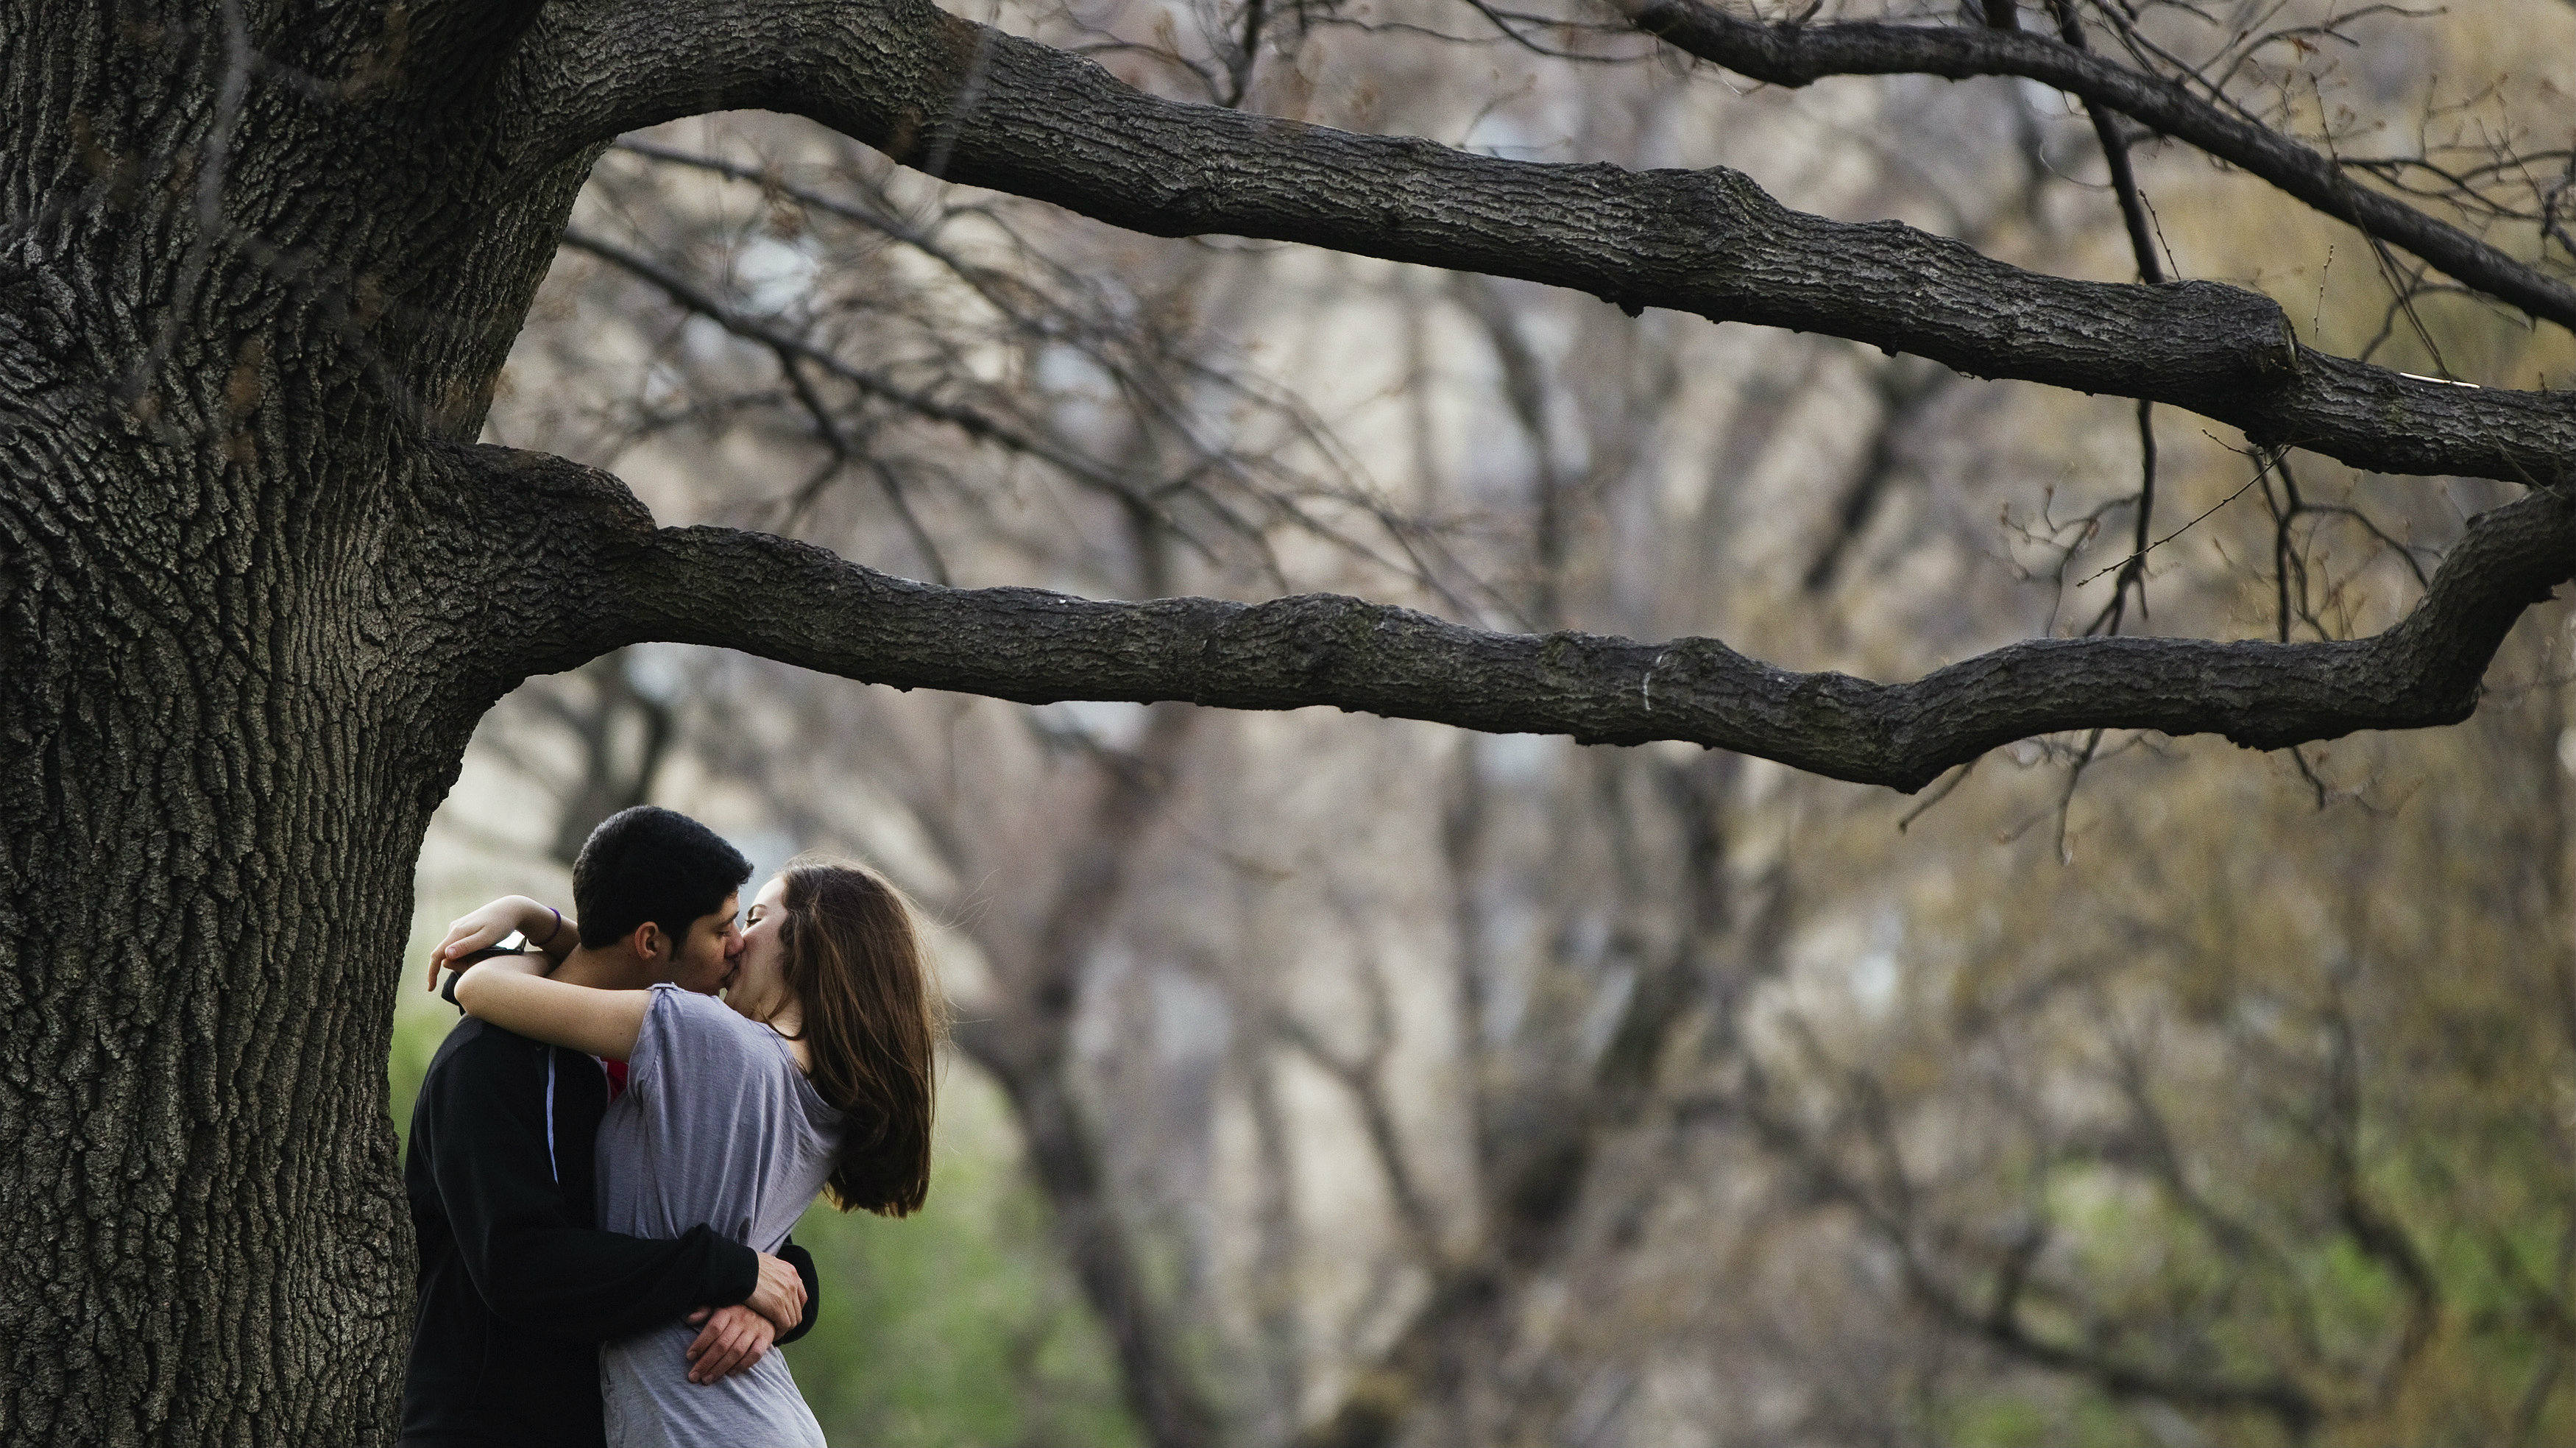 A couple kisses while standing underneath a tree inside Central Park during a warm day in New York.